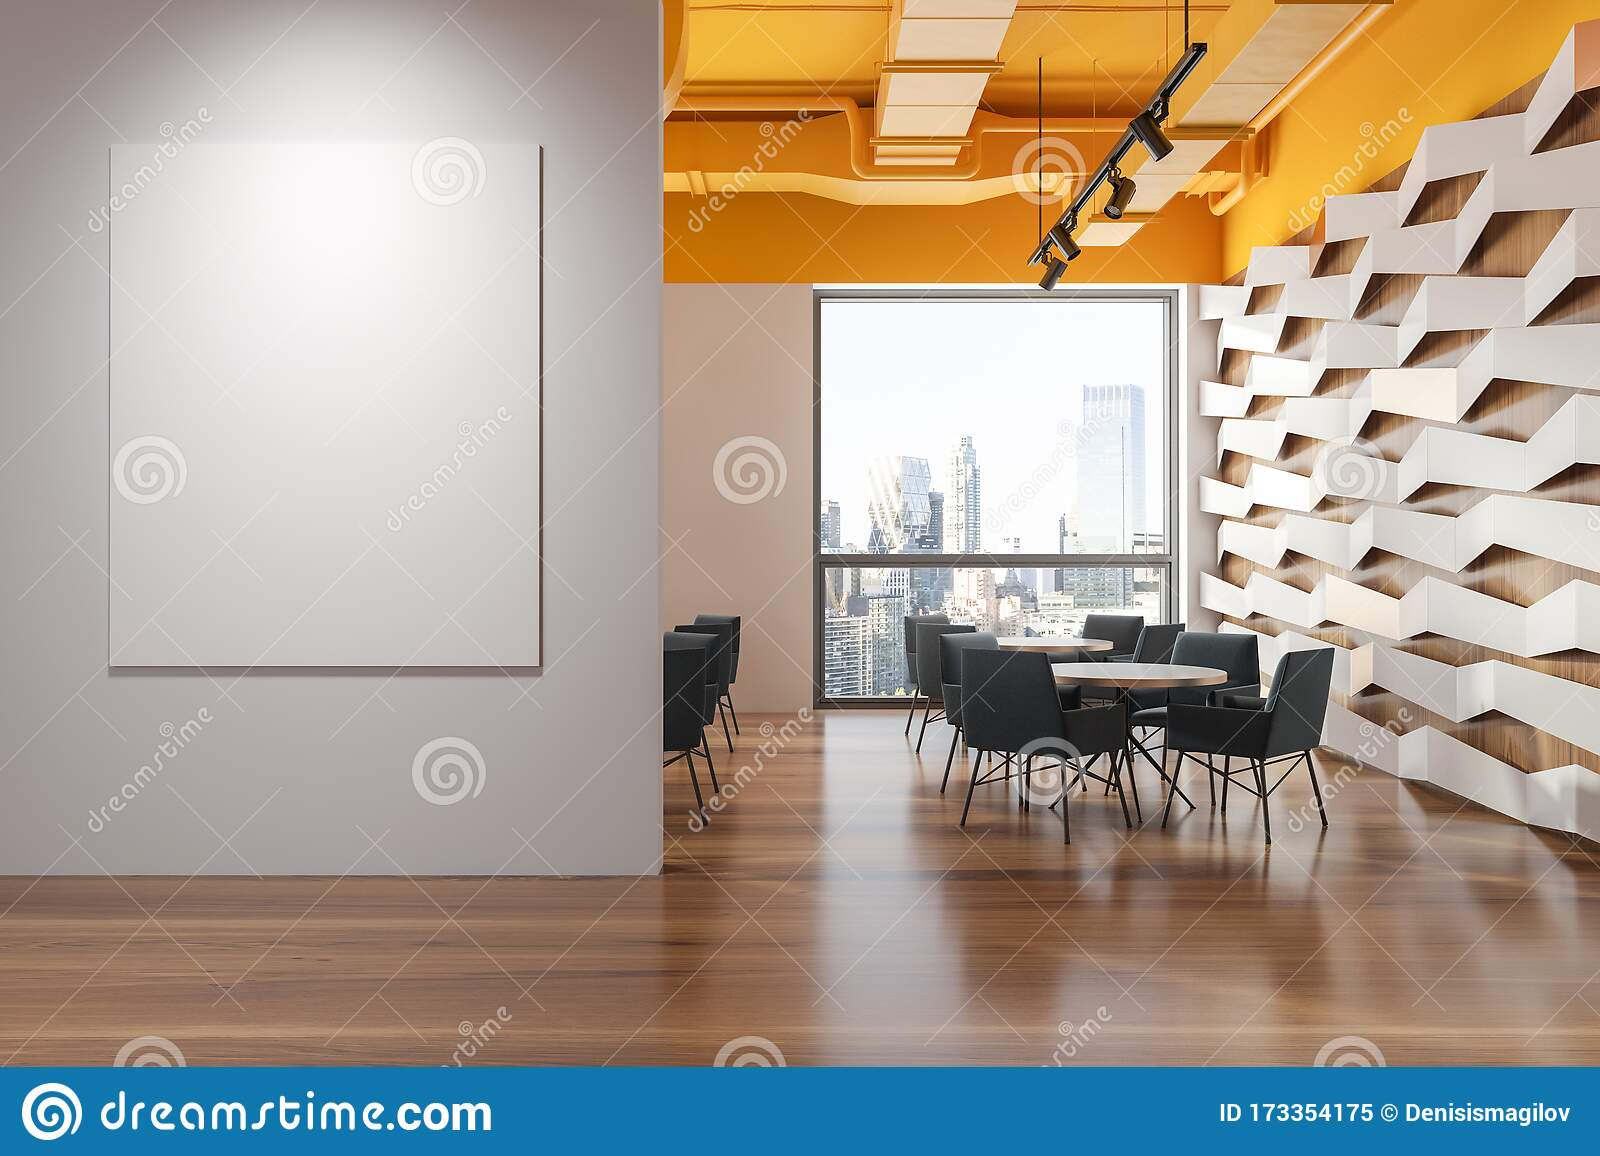 Yellow Ceiling Geometric Pattern Cafe With Banner Stock Illustration Illustration Of Elegance Copy 173354175